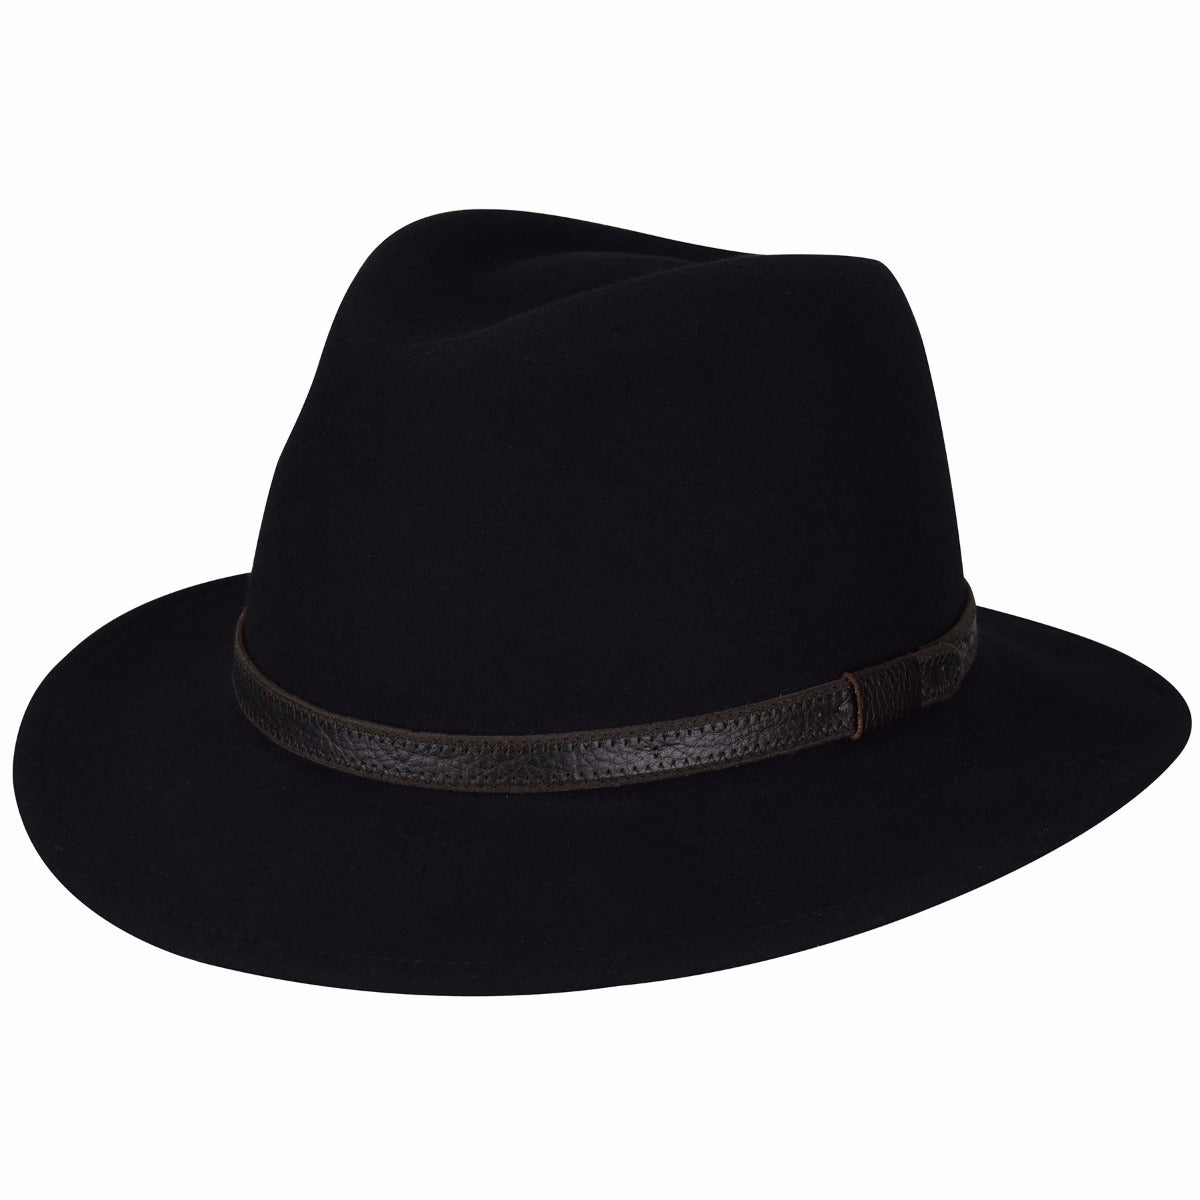 1950s Mens Hats | 50s Vintage Men's Hats Hamilton GentleFelt Fedora $65.00 AT vintagedancer.com